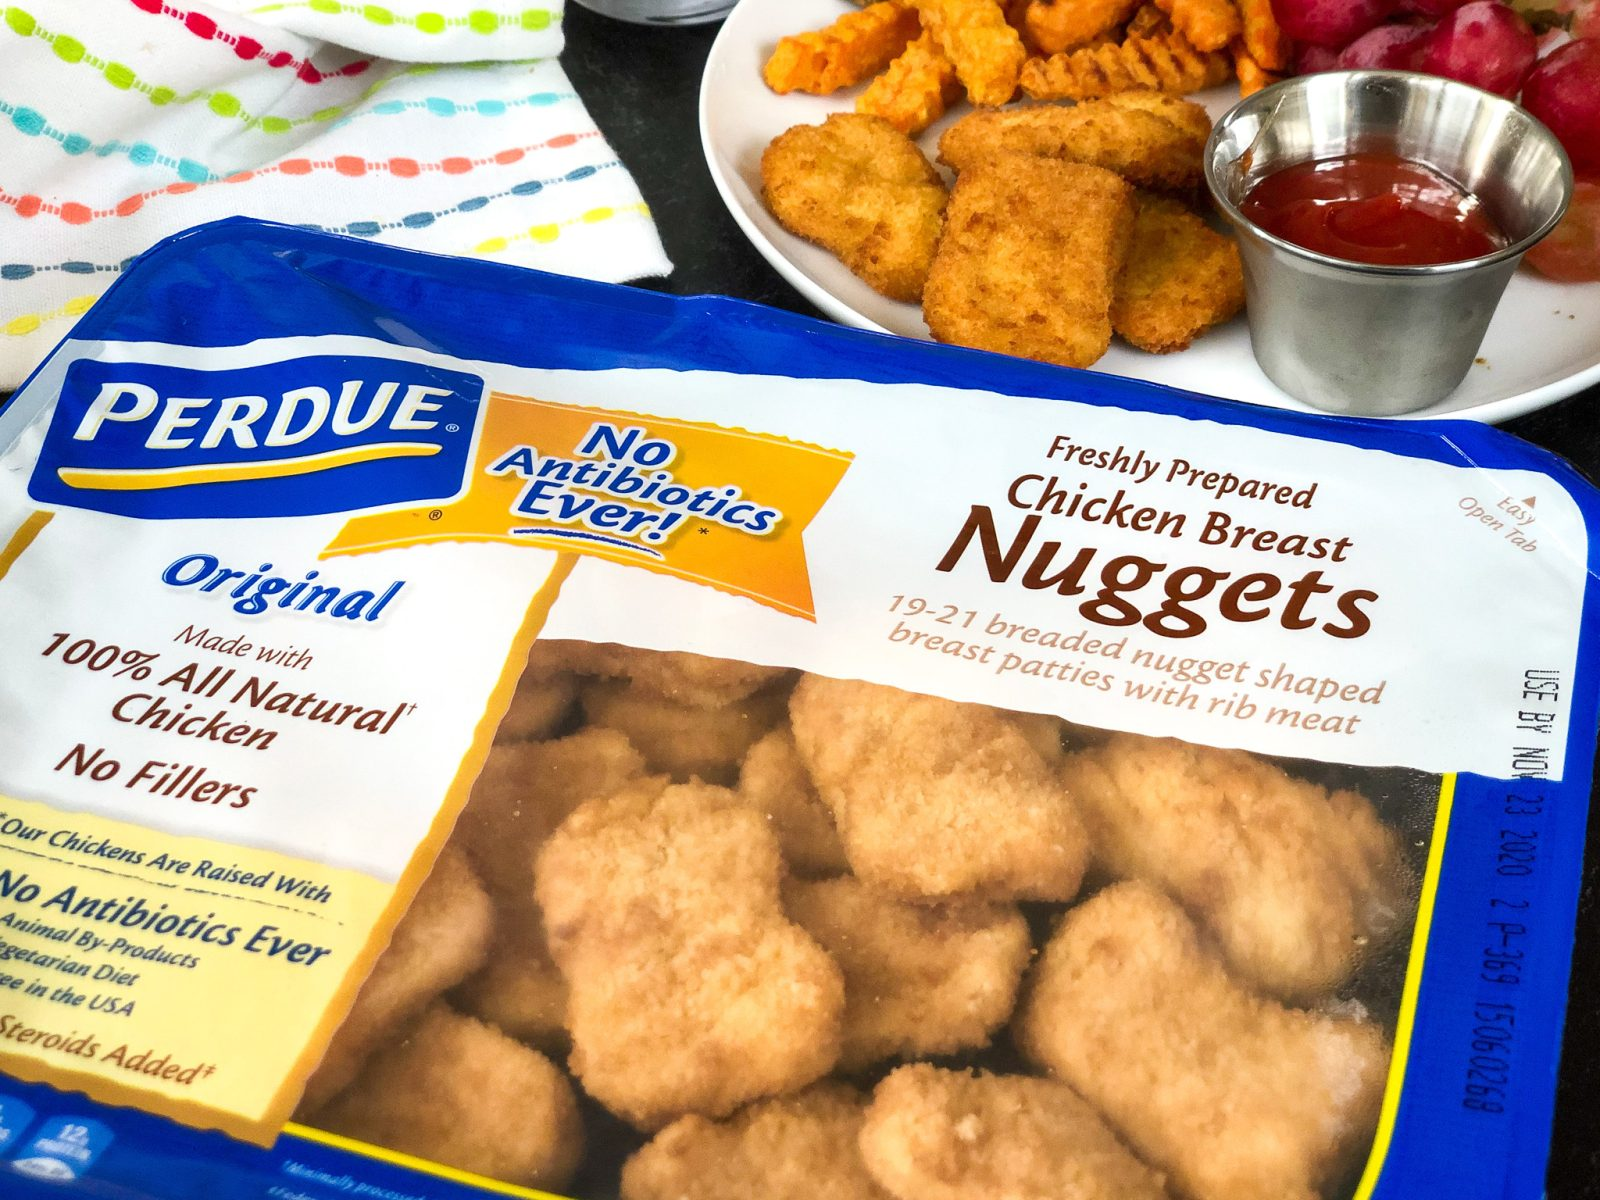 Super Deals On Perdue Bagged Chicken (Frozen & Refrigerated Varieties!) on I Heart Publix 1